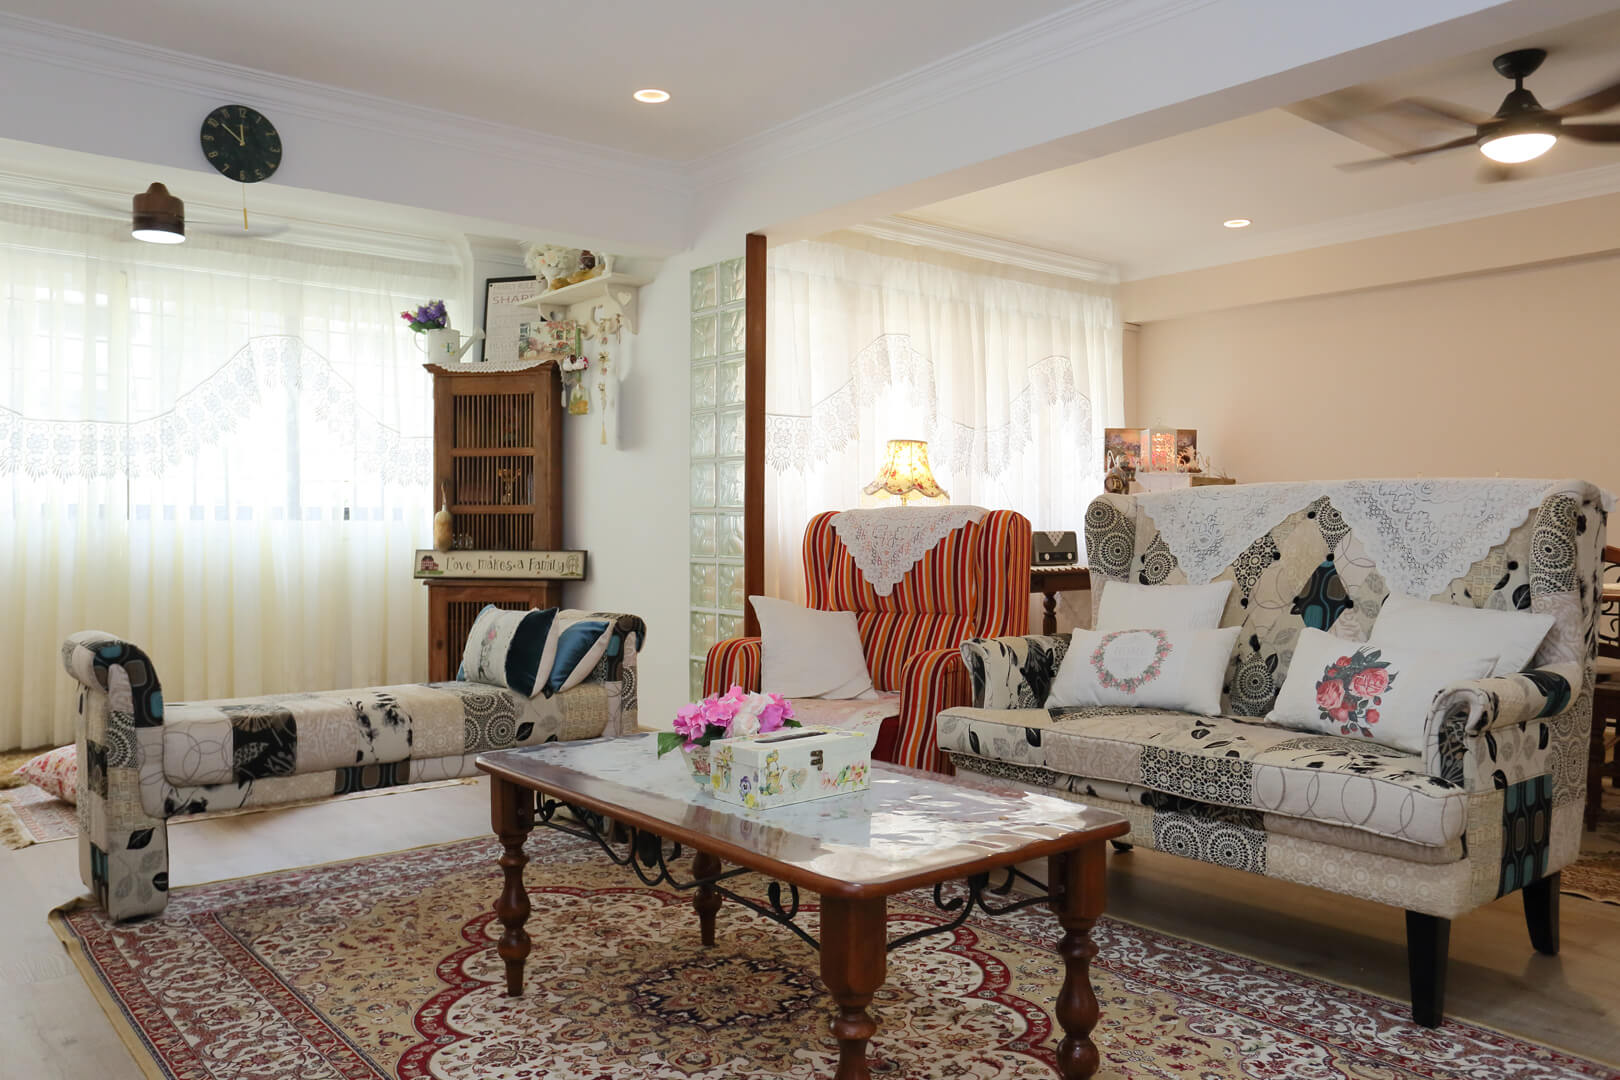 Country Chic Ambiance Interior Design Living Room View